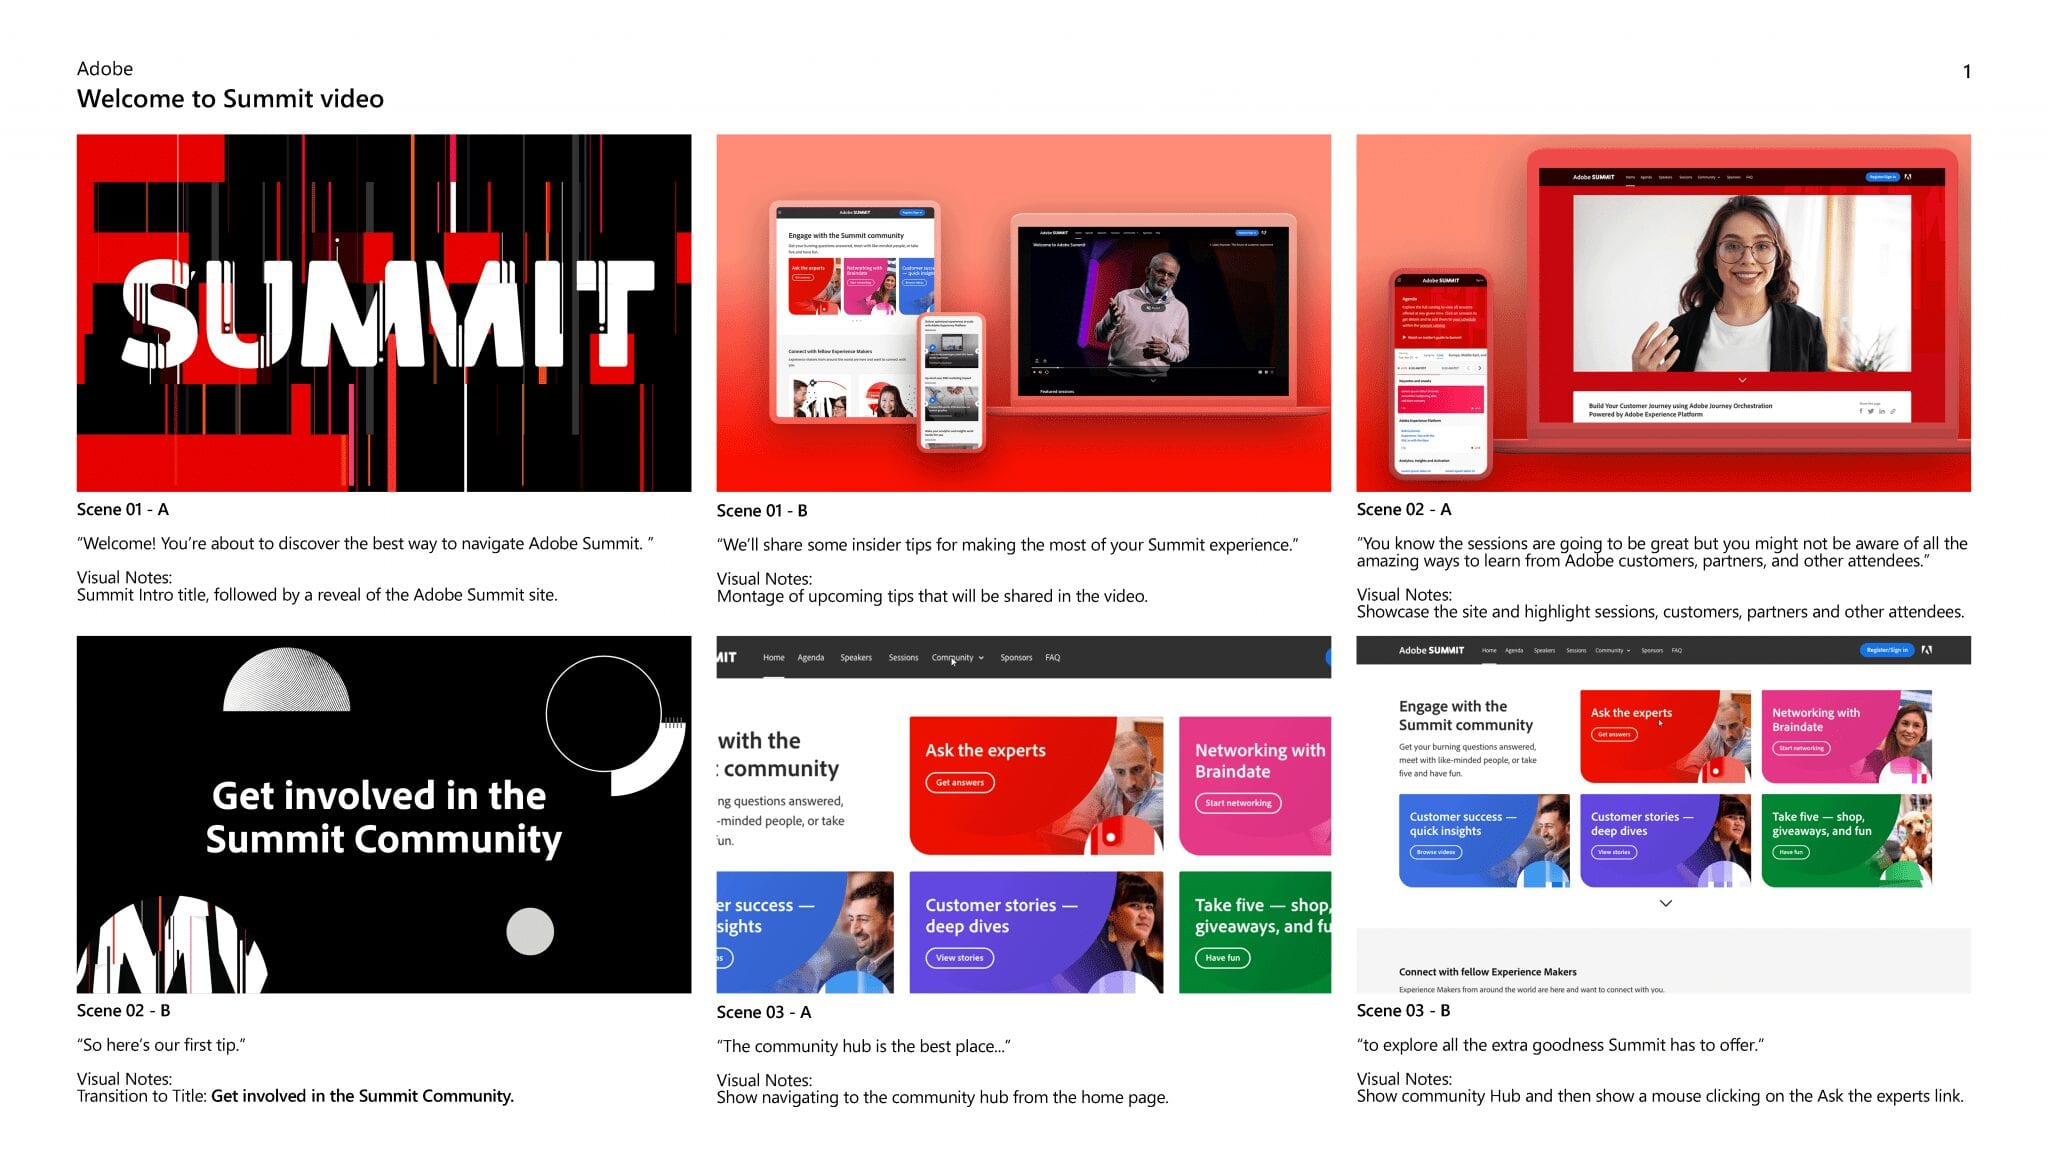 Adobe-Welcome-To-Summit-Video-V4_Page_02